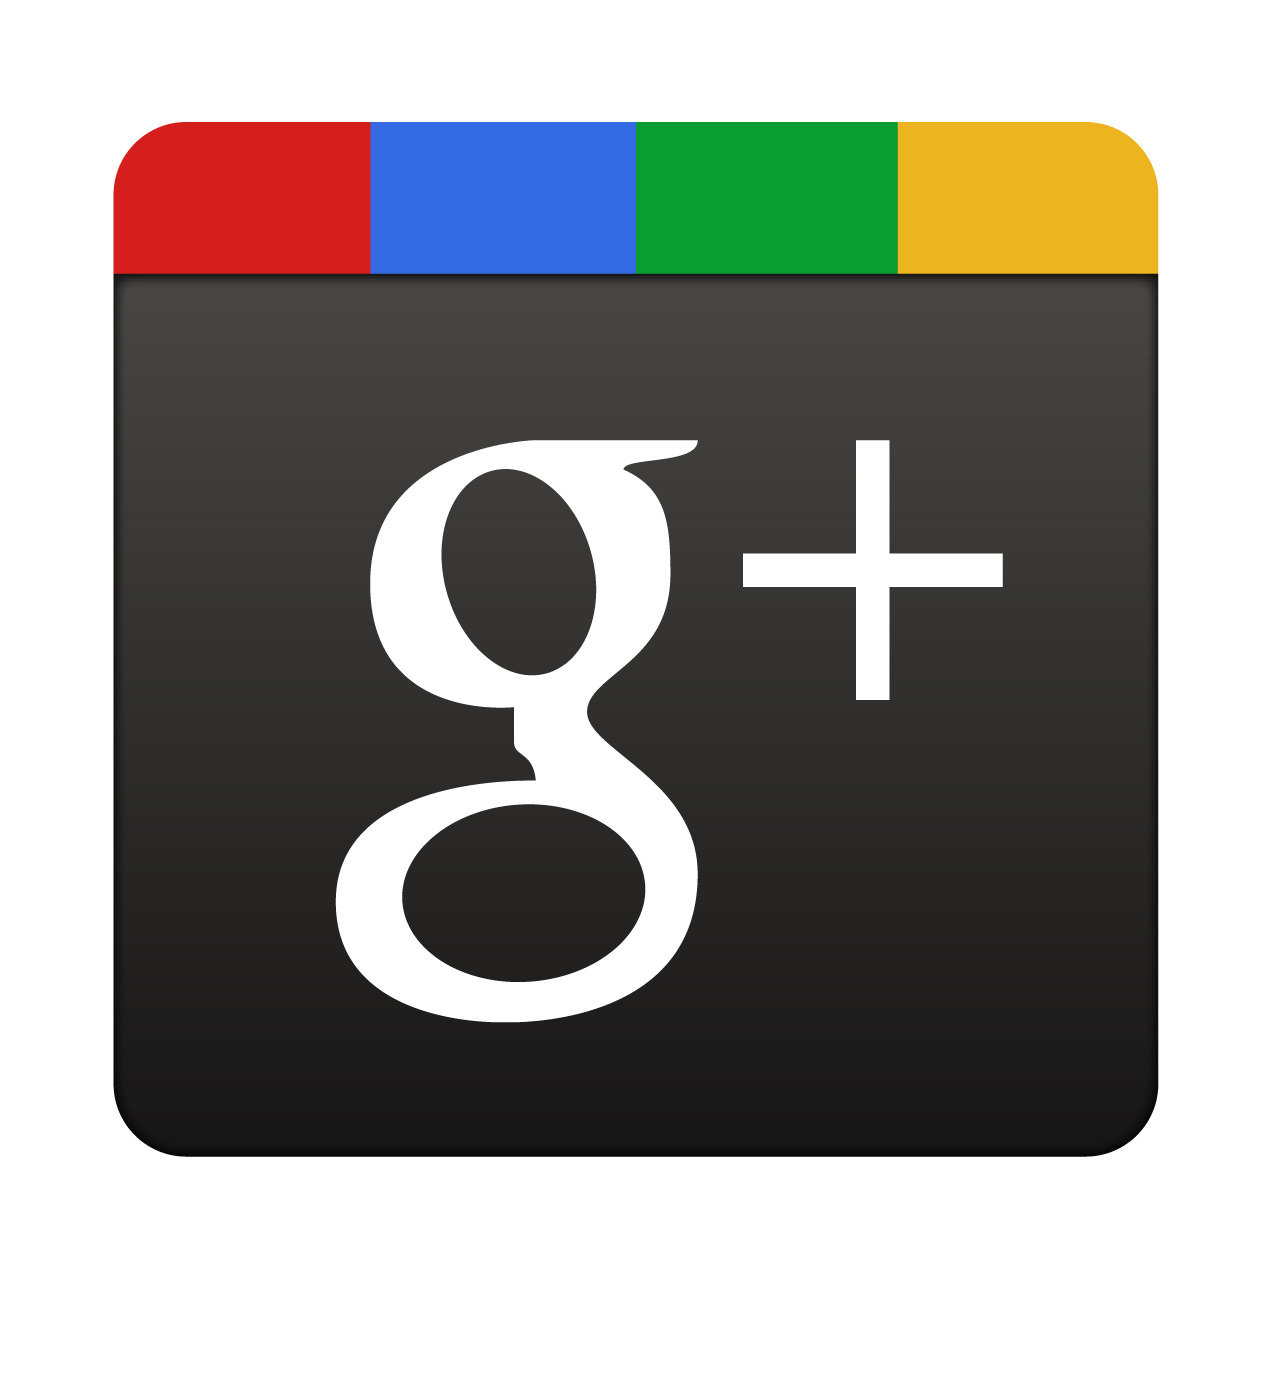 American Freight Furniture Introduces Google Plus Page